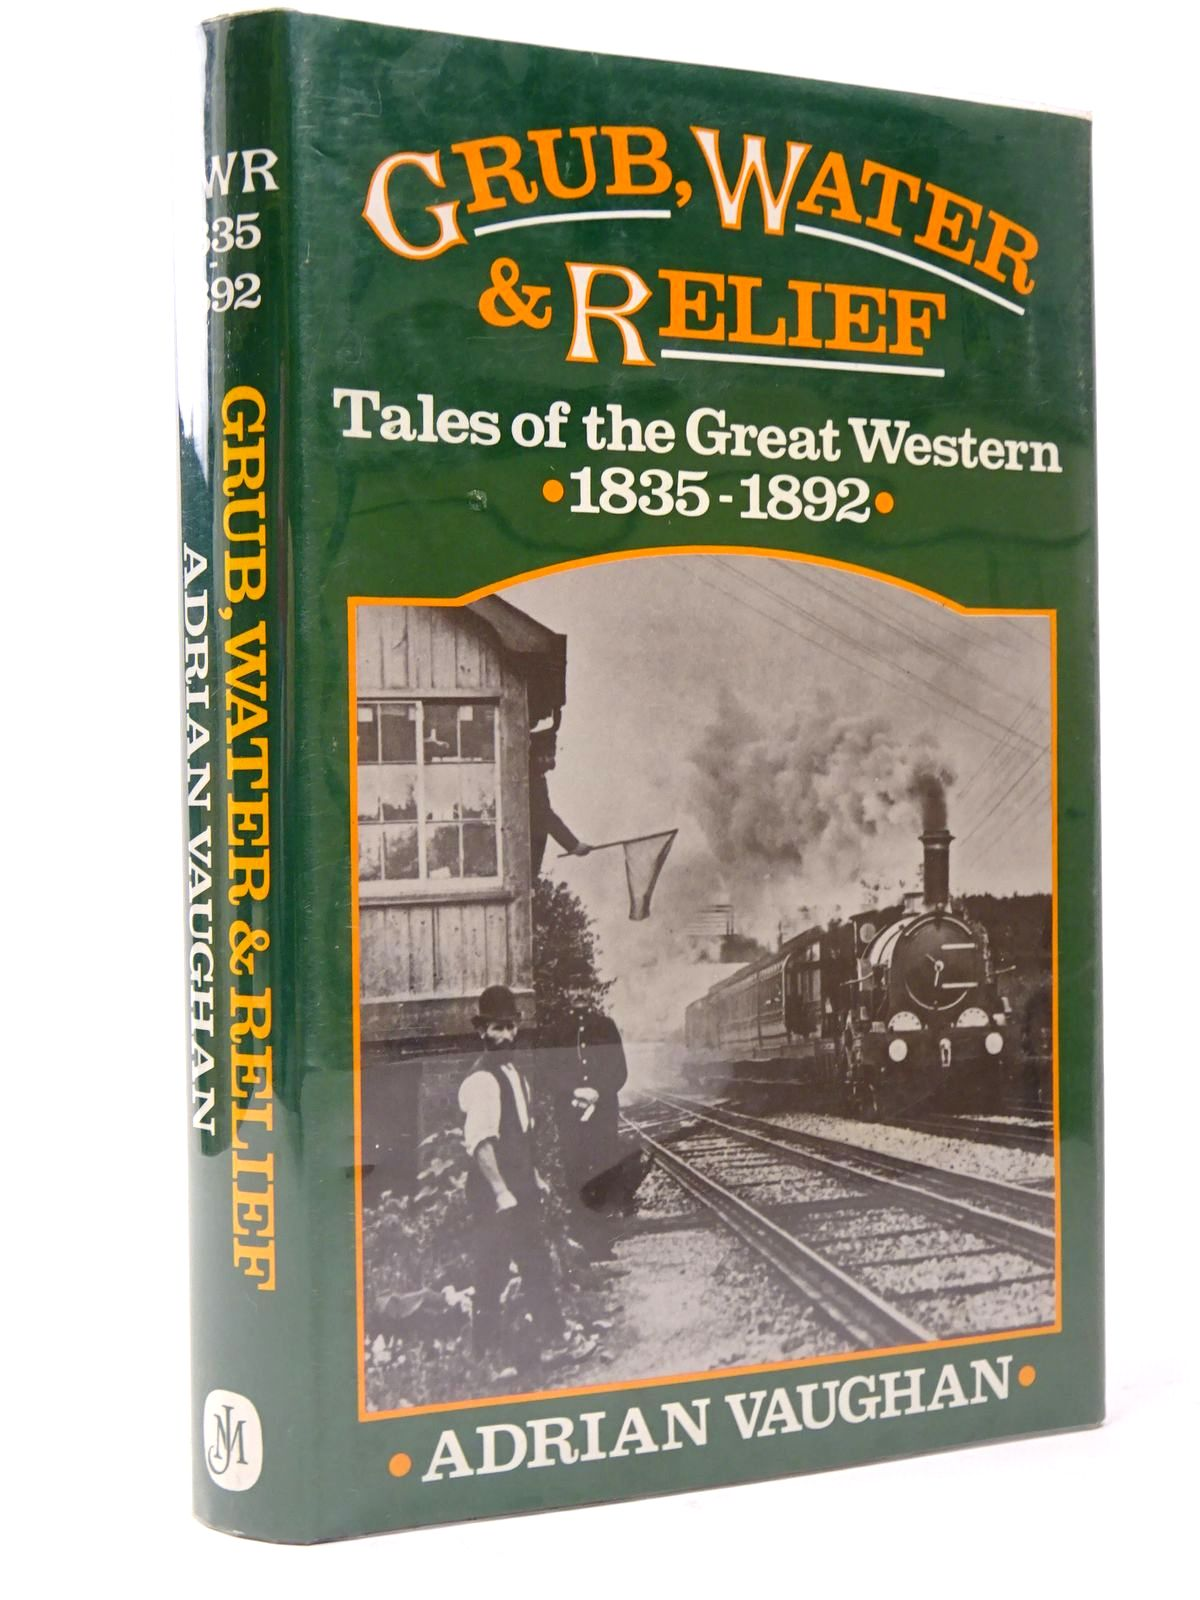 Photo of GRUB, WATER & RELIEF written by Vaughan, Adrian published by John Murray (STOCK CODE: 1817501)  for sale by Stella & Rose's Books